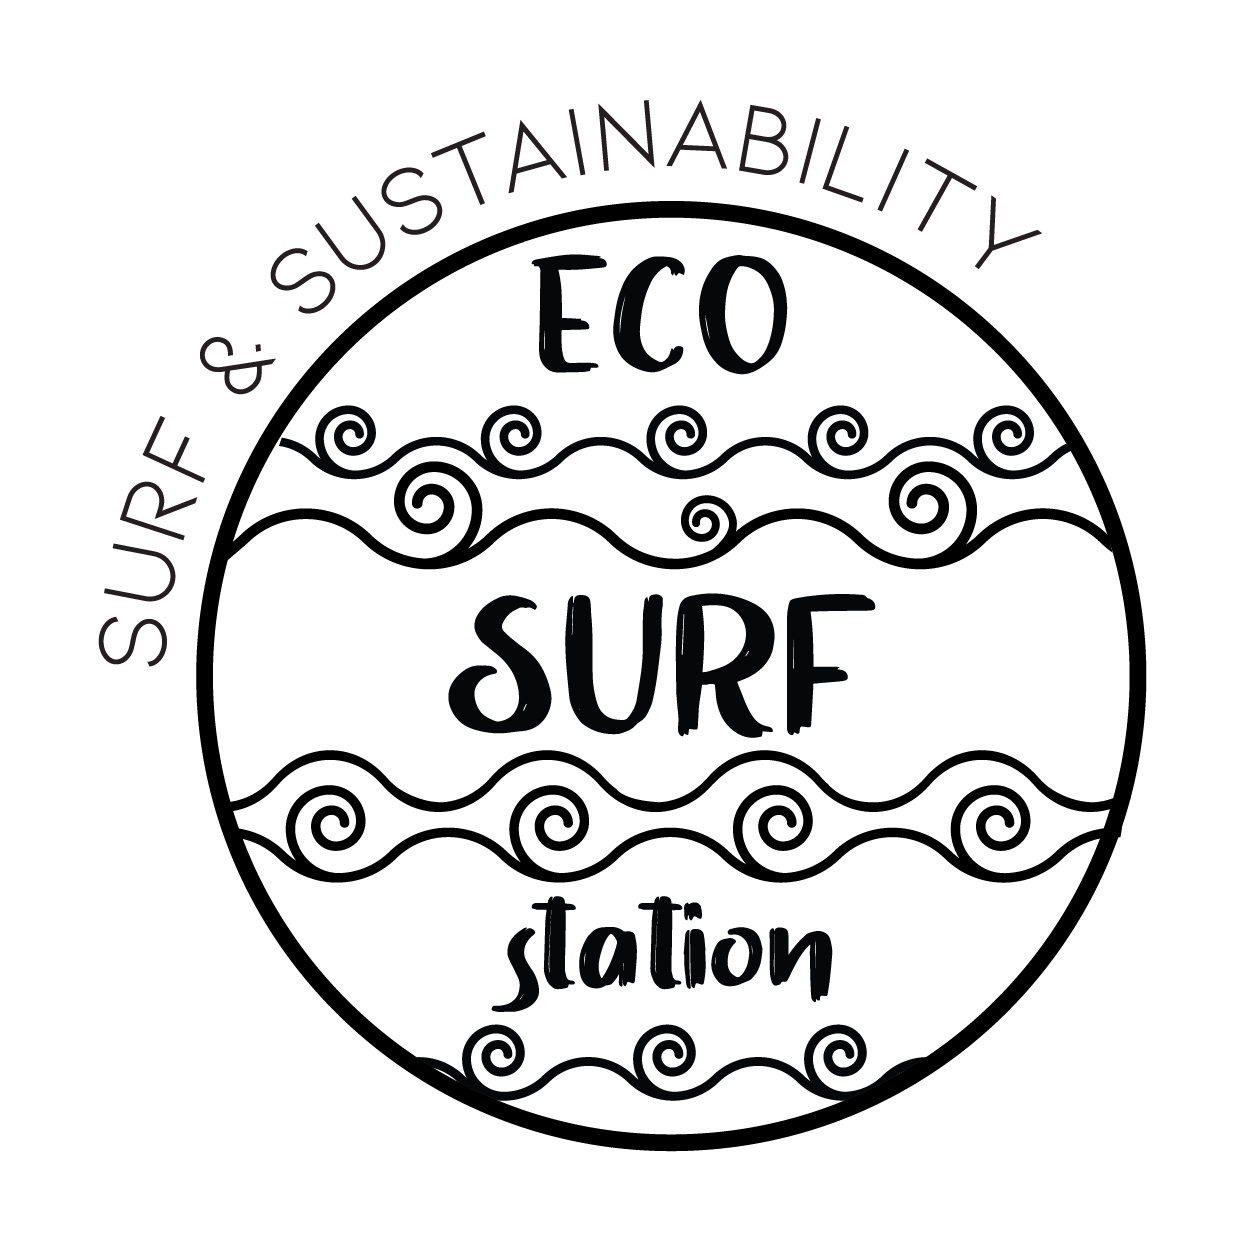 Eco Surf Station  -  Sponsor & headquarter of Share The Wave in Huanchaco   Eco Surf Station is a space dedicated to surfing, together with a sustainable lifestyle. It offers surf classes, as well as rental and gear, together with plastic-free alternatives for every day life. Located in the surf town and World Surfing Reserve of Huanchaco, it was also founded by the founders of Share The Wave.  Check them out!